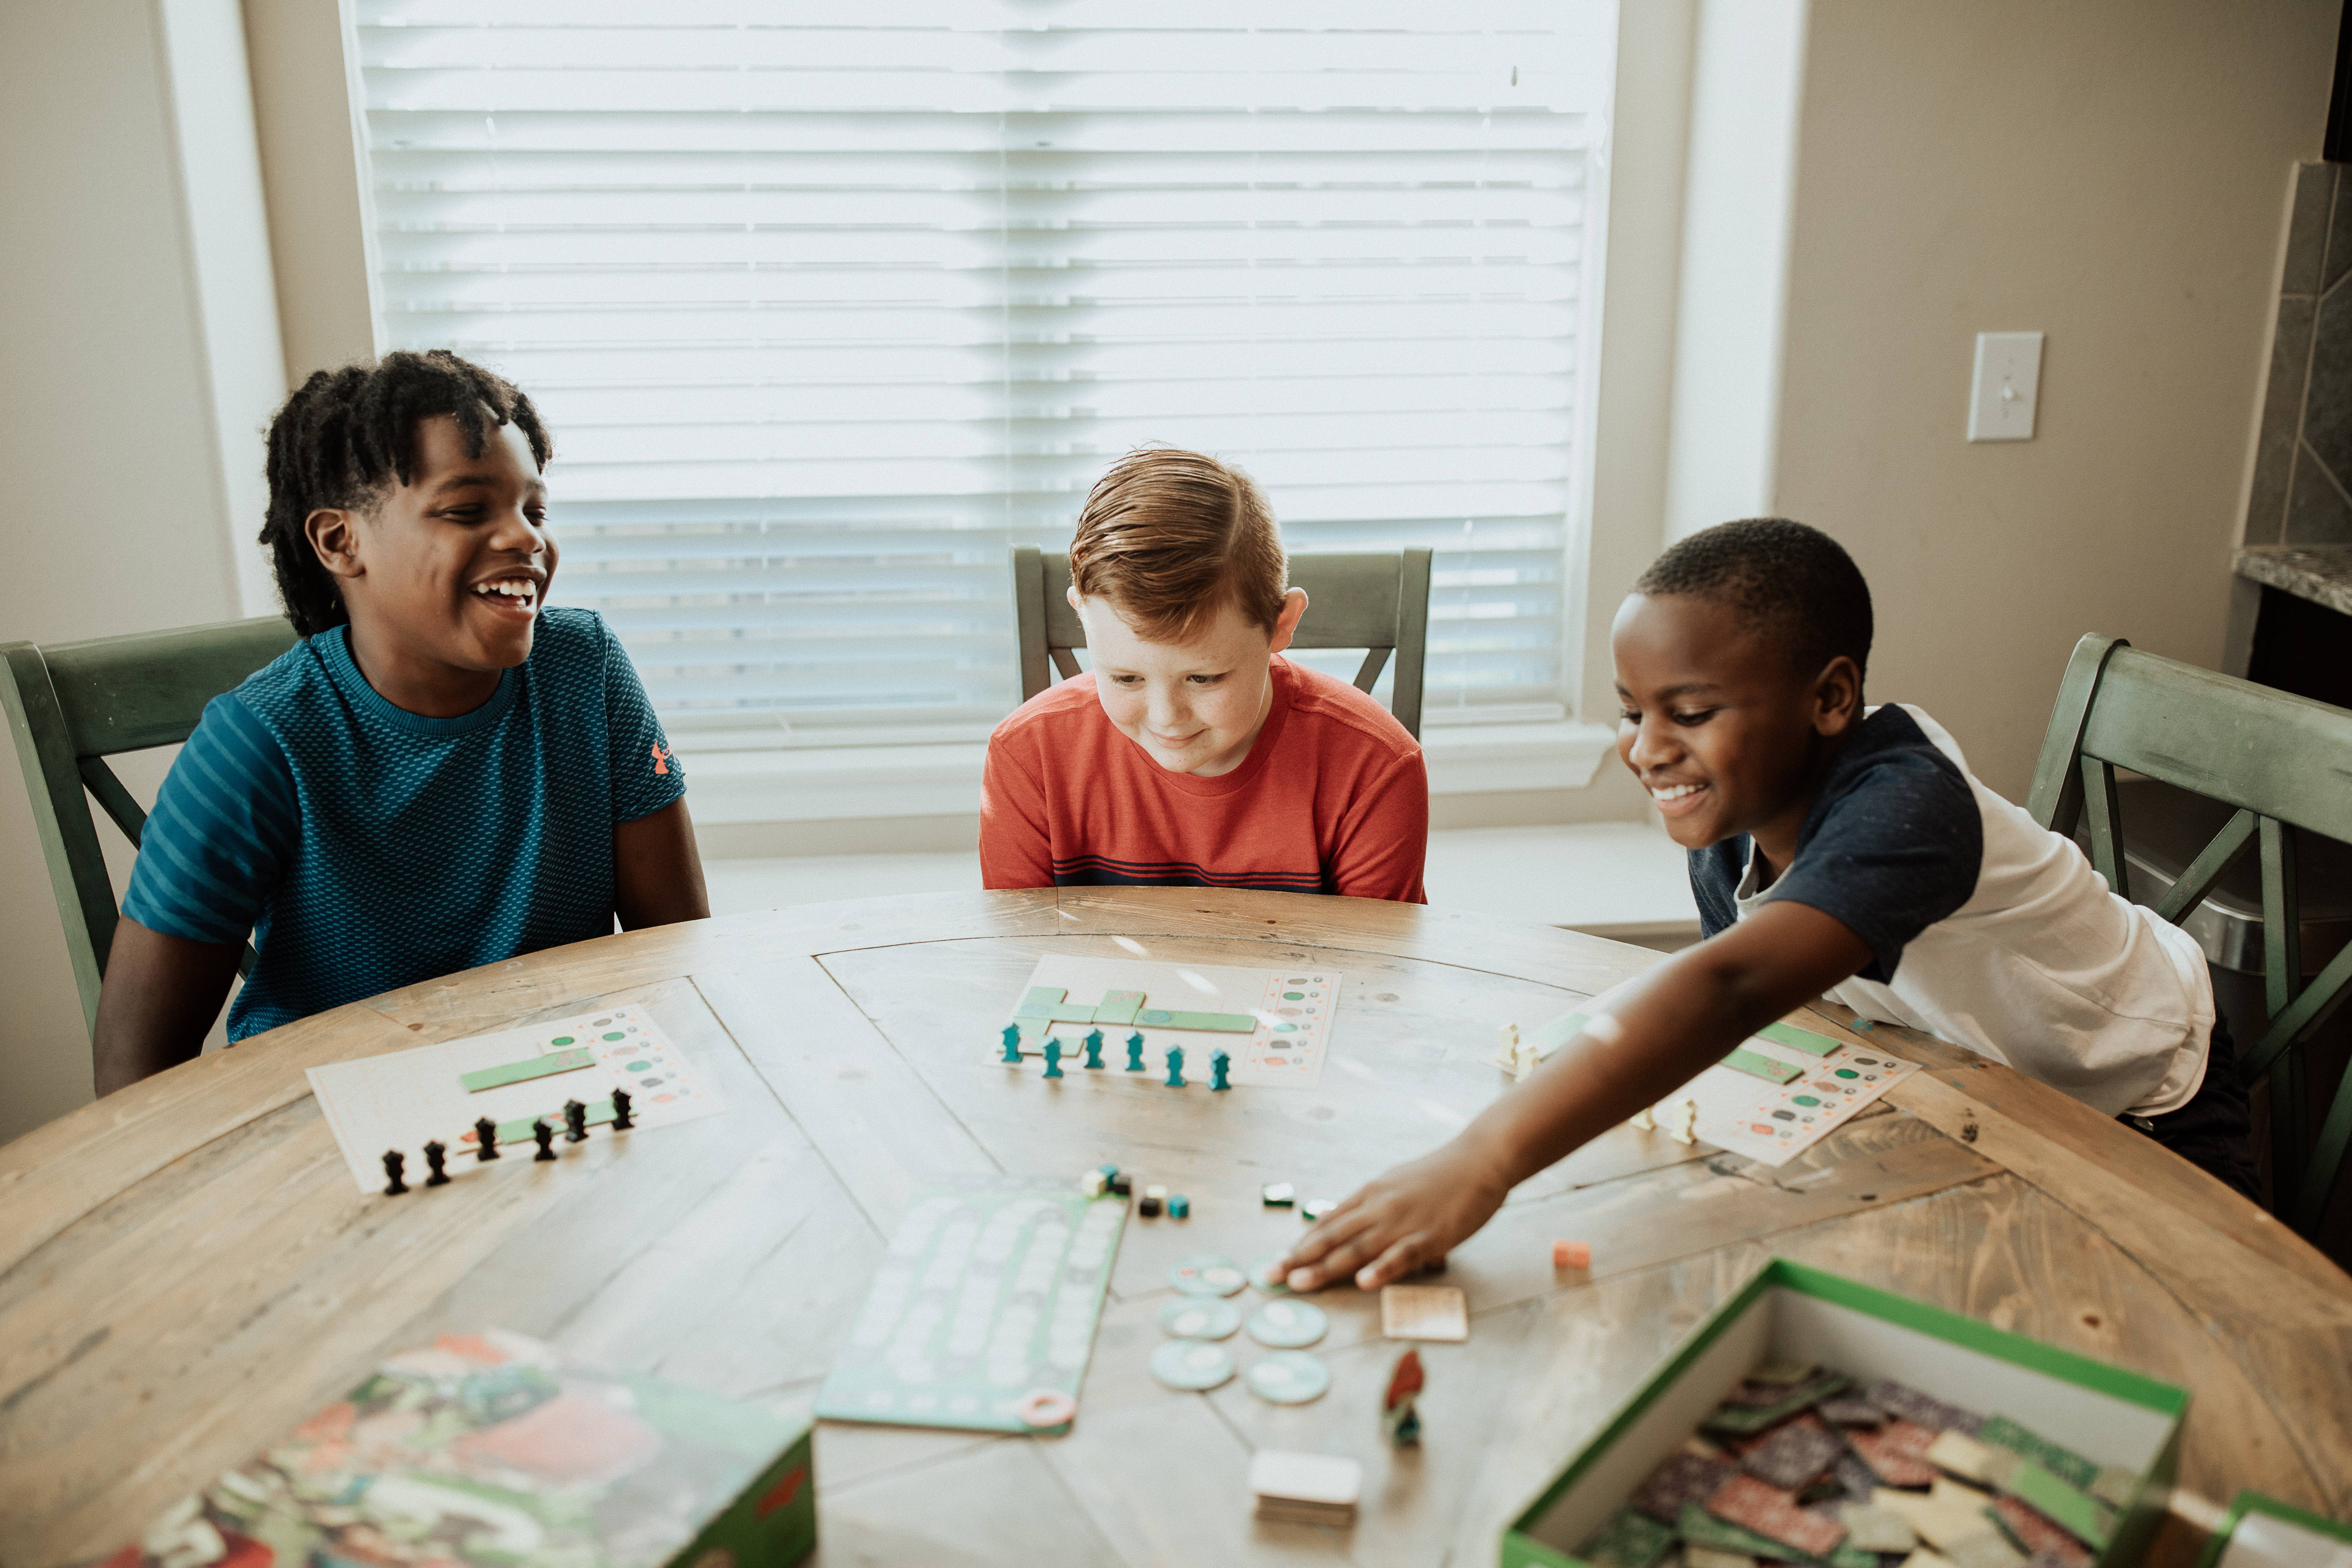 Encourage Cognitive, Social & Emotional Development with Game Play